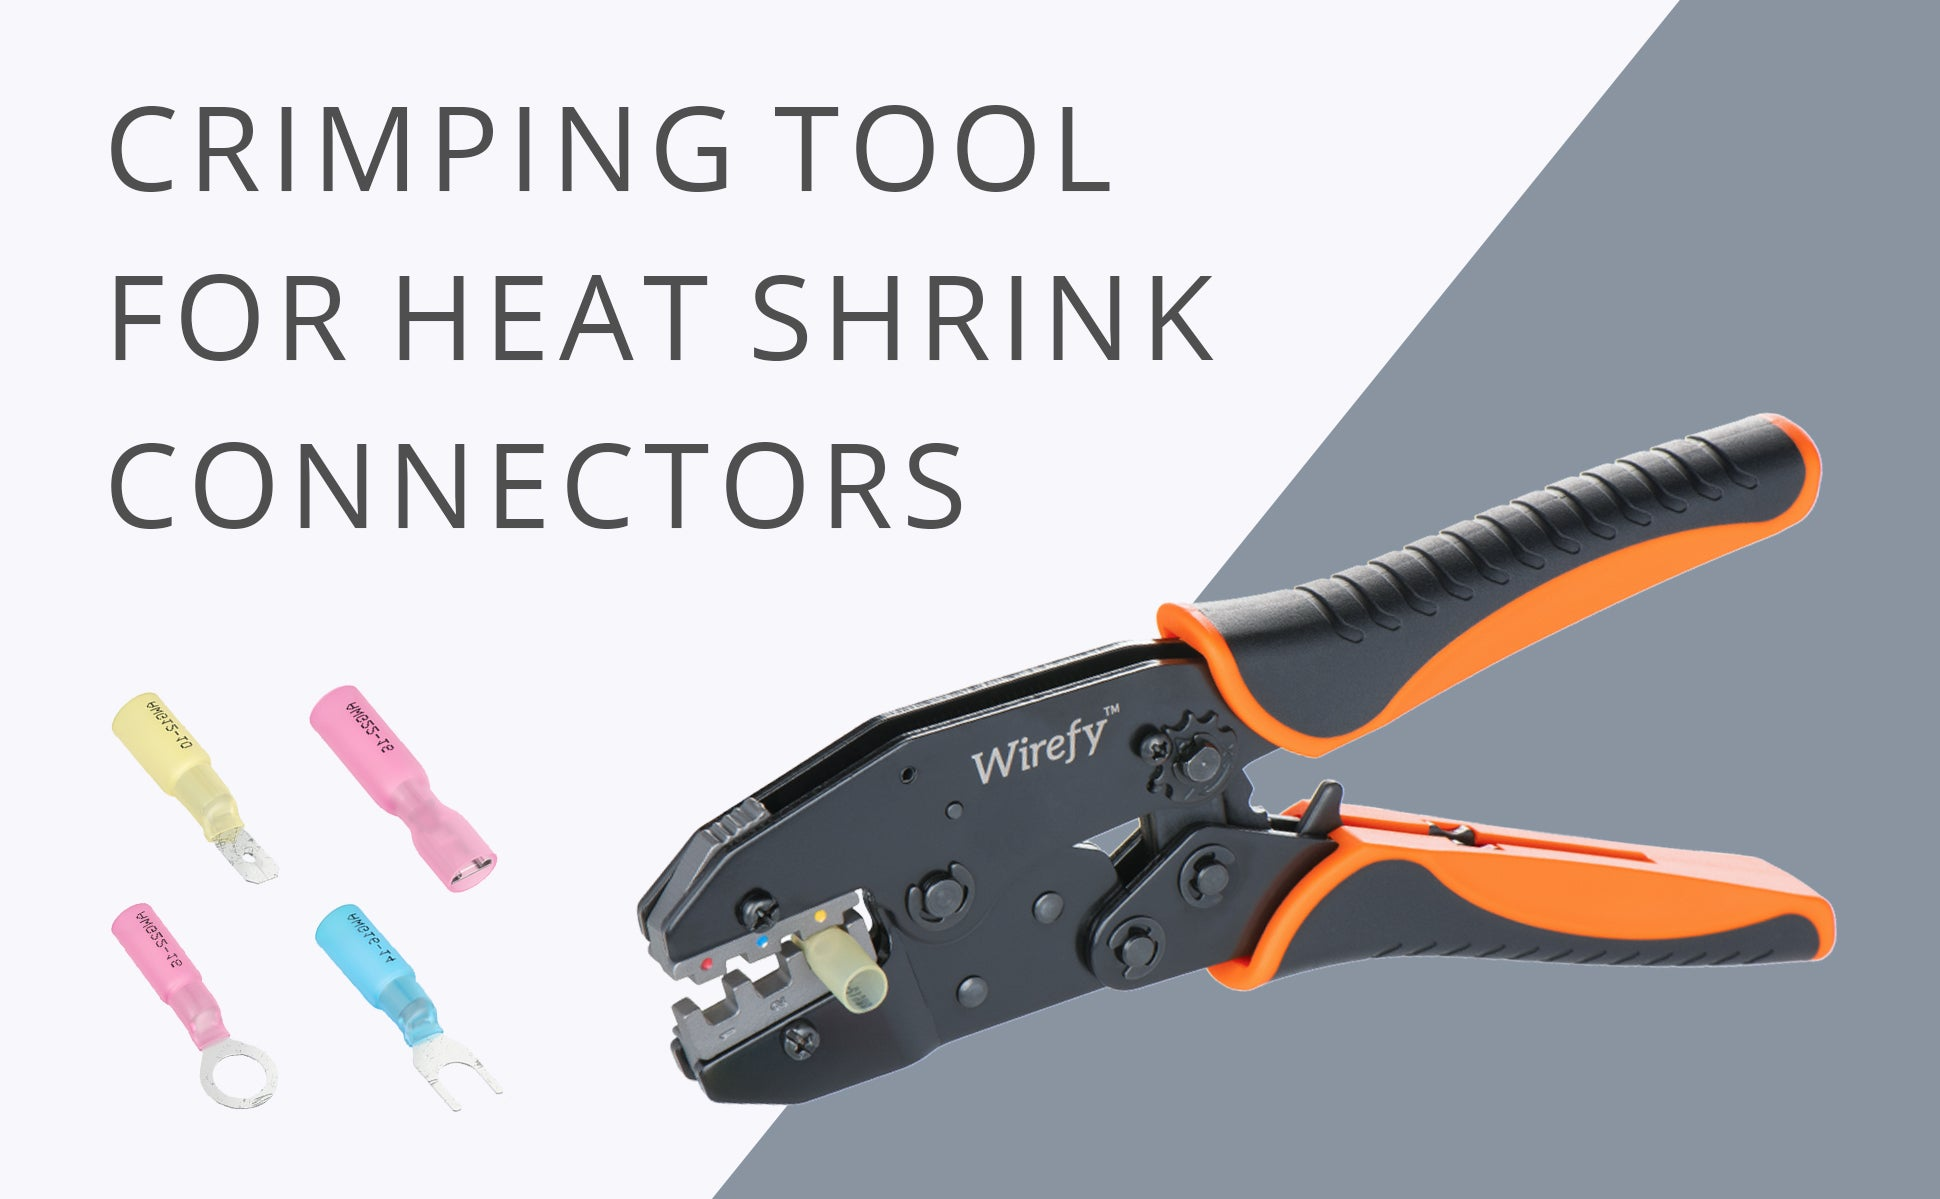 Crimping Tool For Heat Shrink Connectors